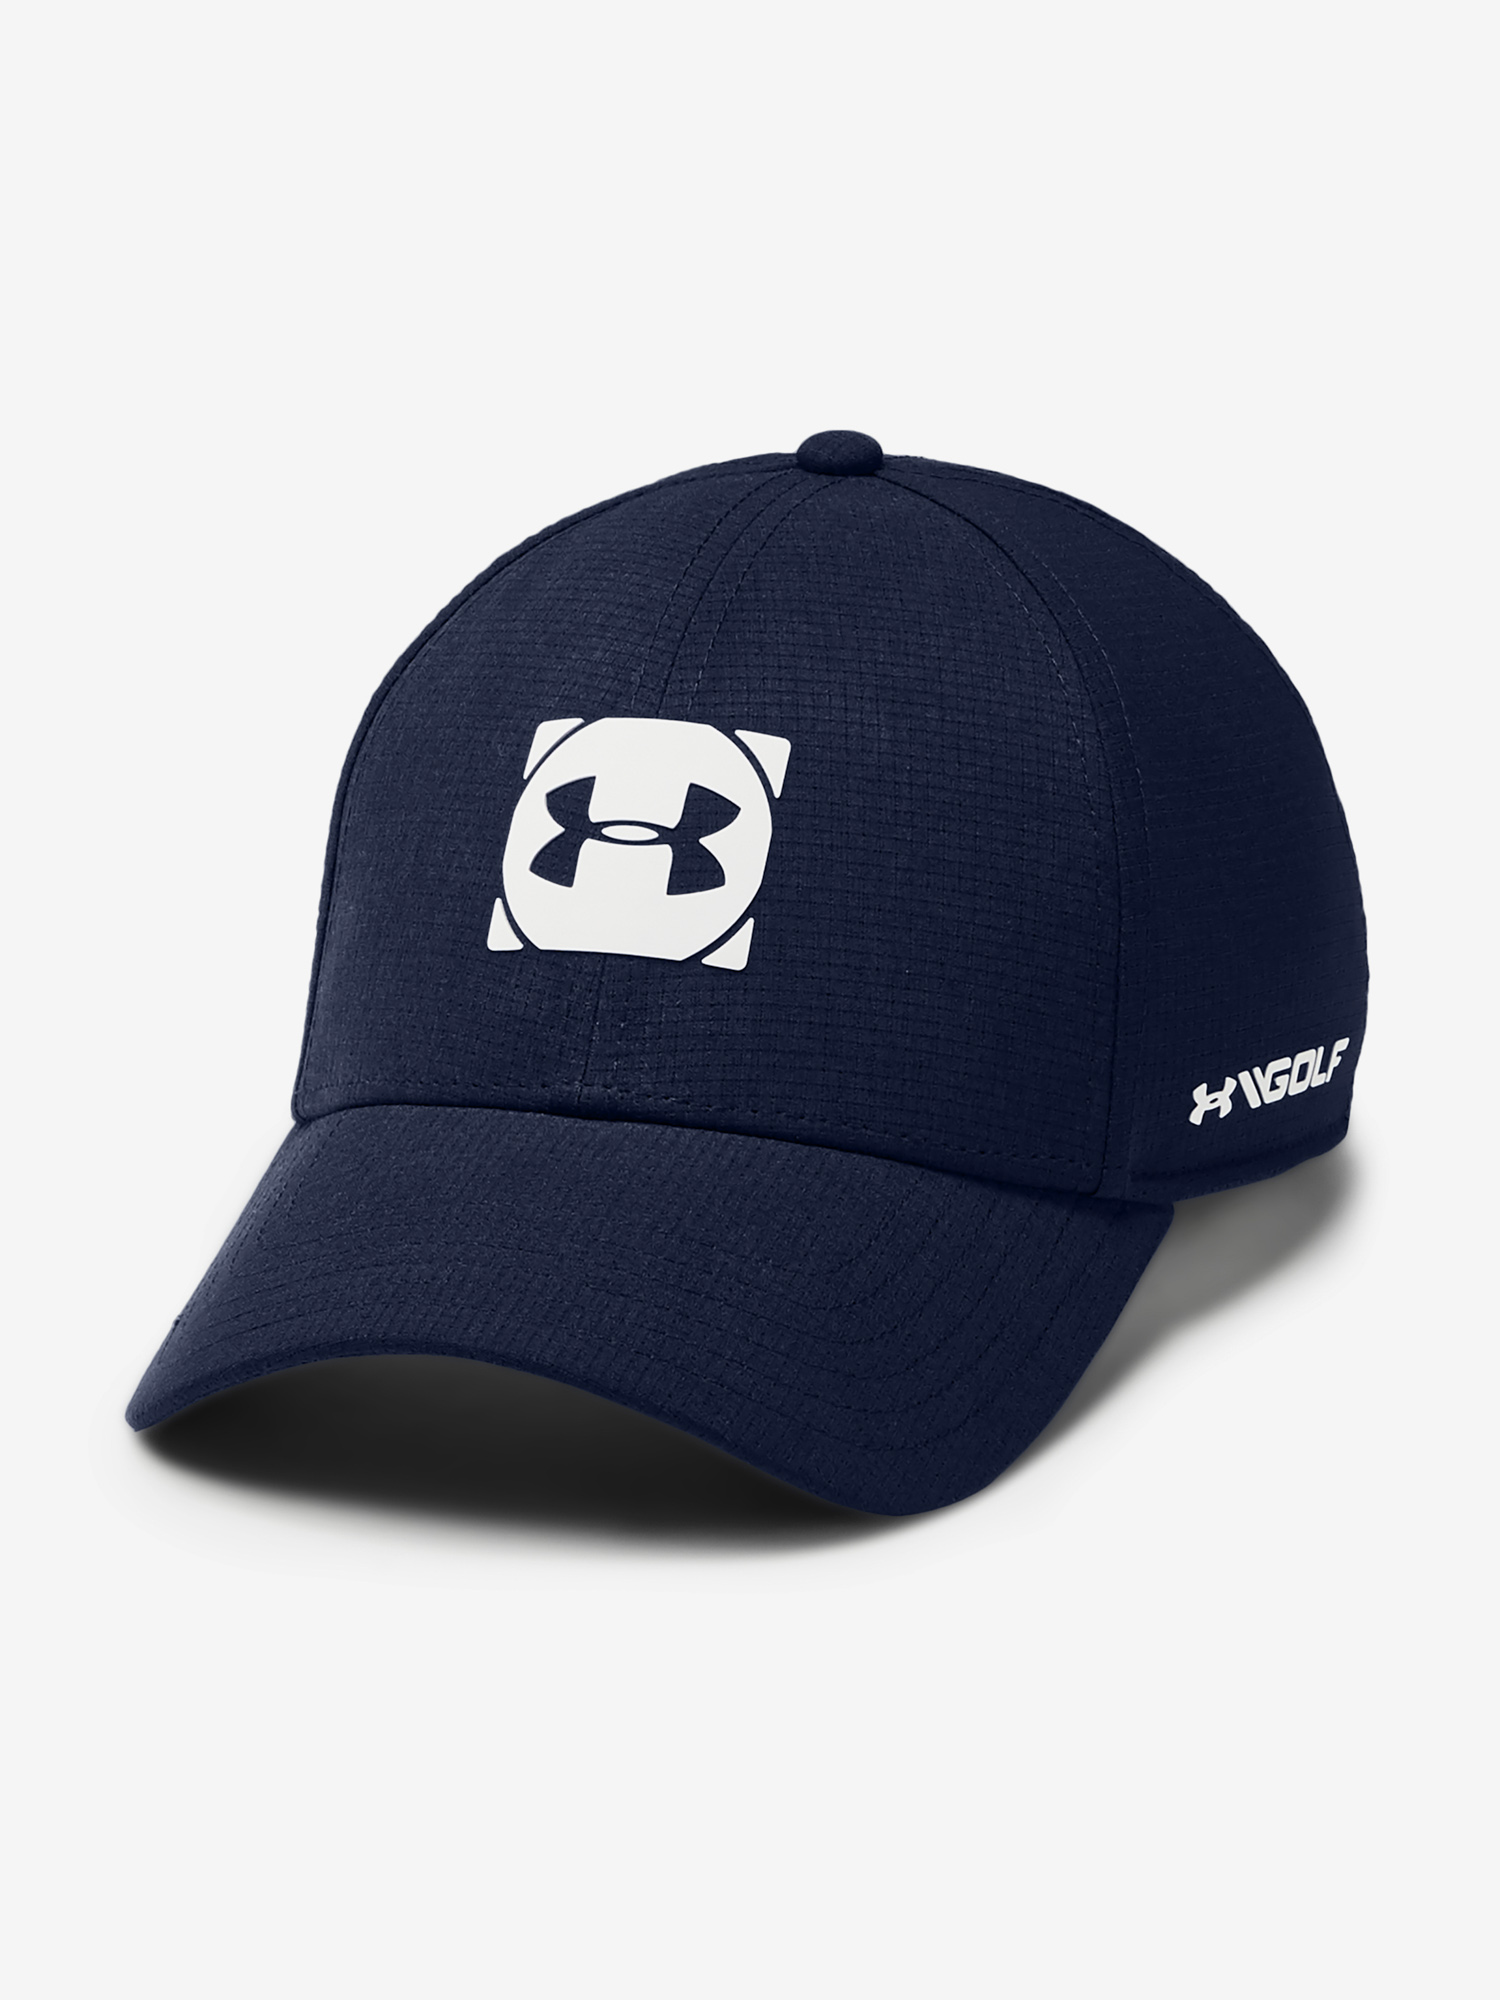 Bergantín Tacón Antagonismo  Kšiltovka Under Armour Men\'s Official Tour Cap 3.0 | UrbanStore.cz